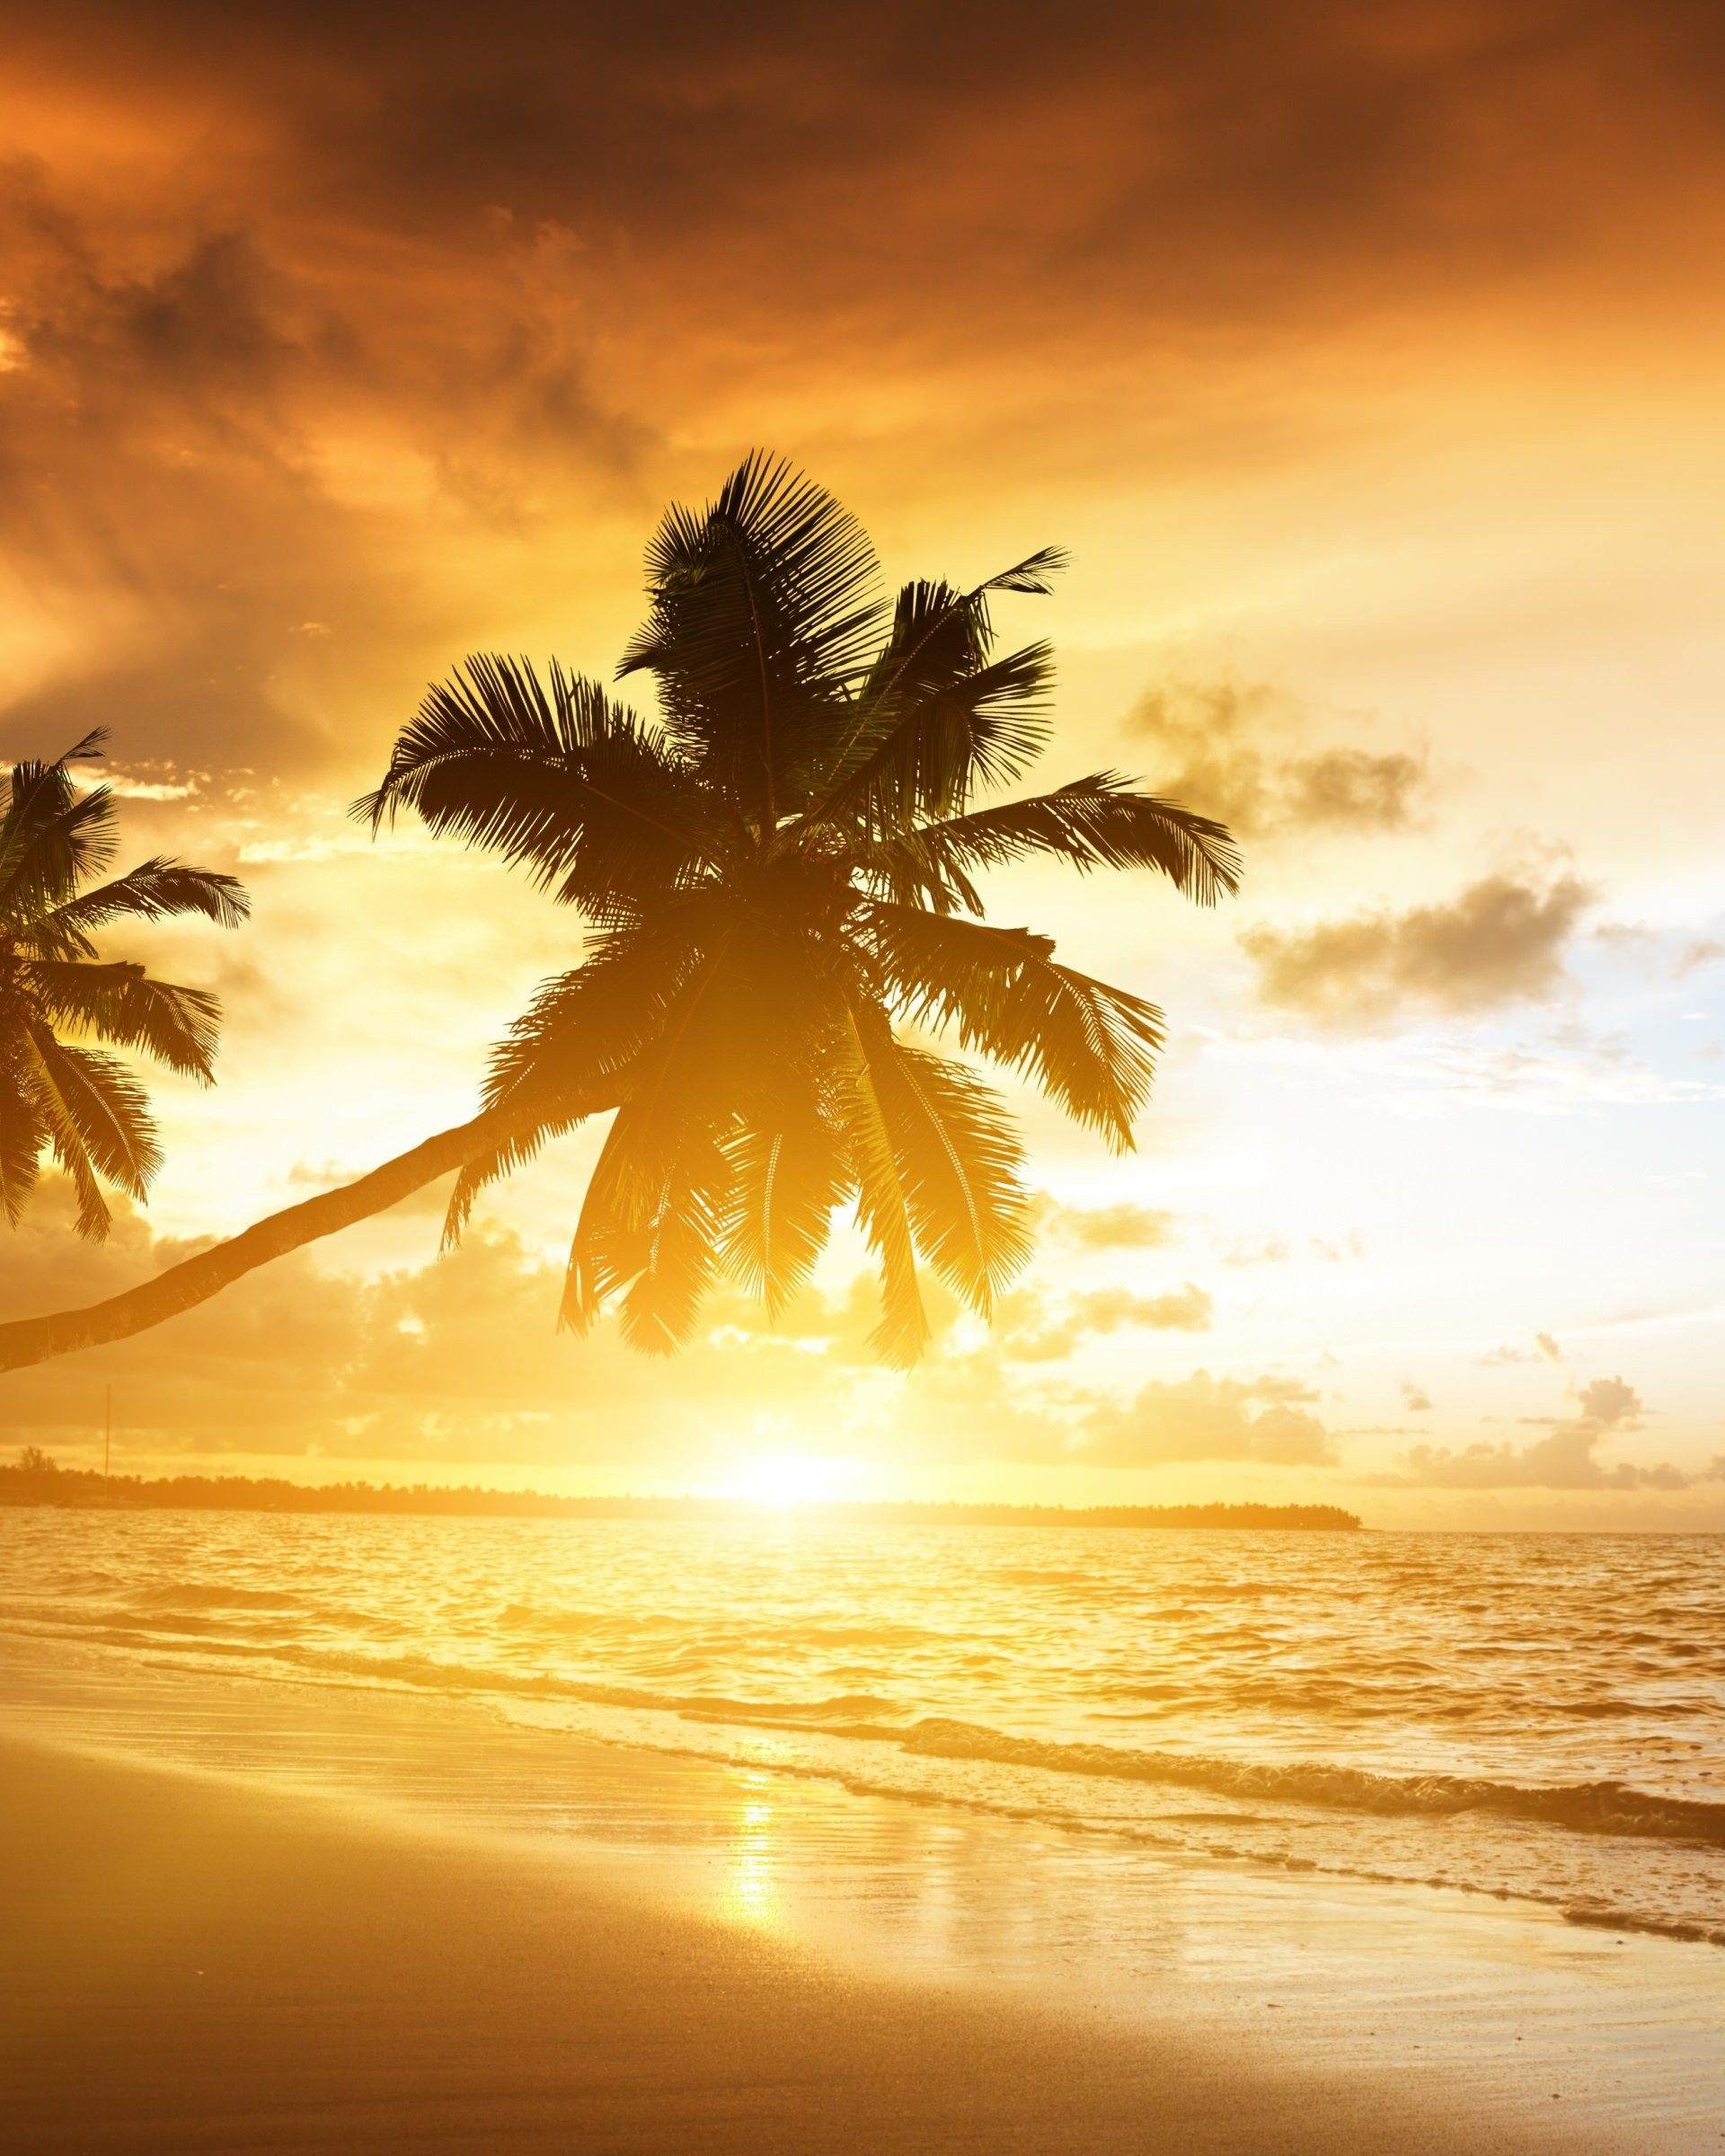 Beach With Palm Trees At Sunset Wallpaper for Google Nexus 7